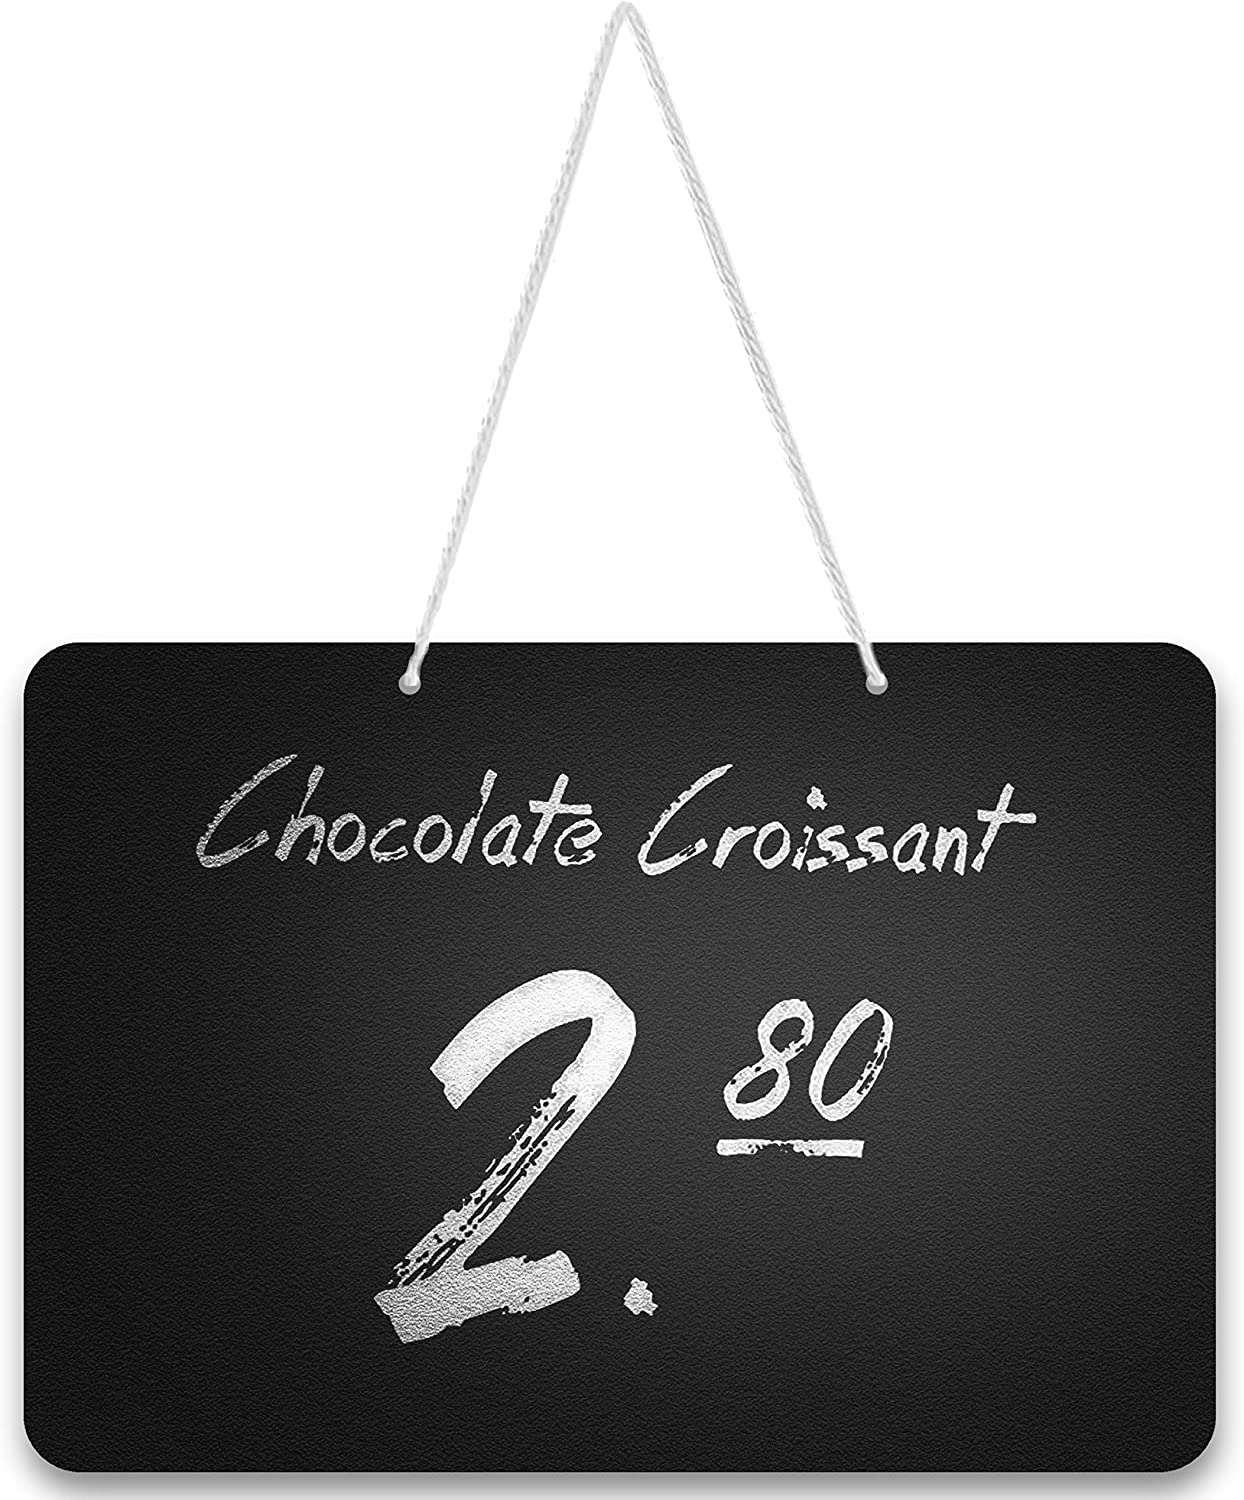 10 Pack Rustic Hanging Mini Chalkboard Signs - Chalk Sign - Easy to Write and Wipe Out - for Liquid Chalk Markers and Chalk - Hanging Food Labels for Party - Small Chalk Boards Signs for Food